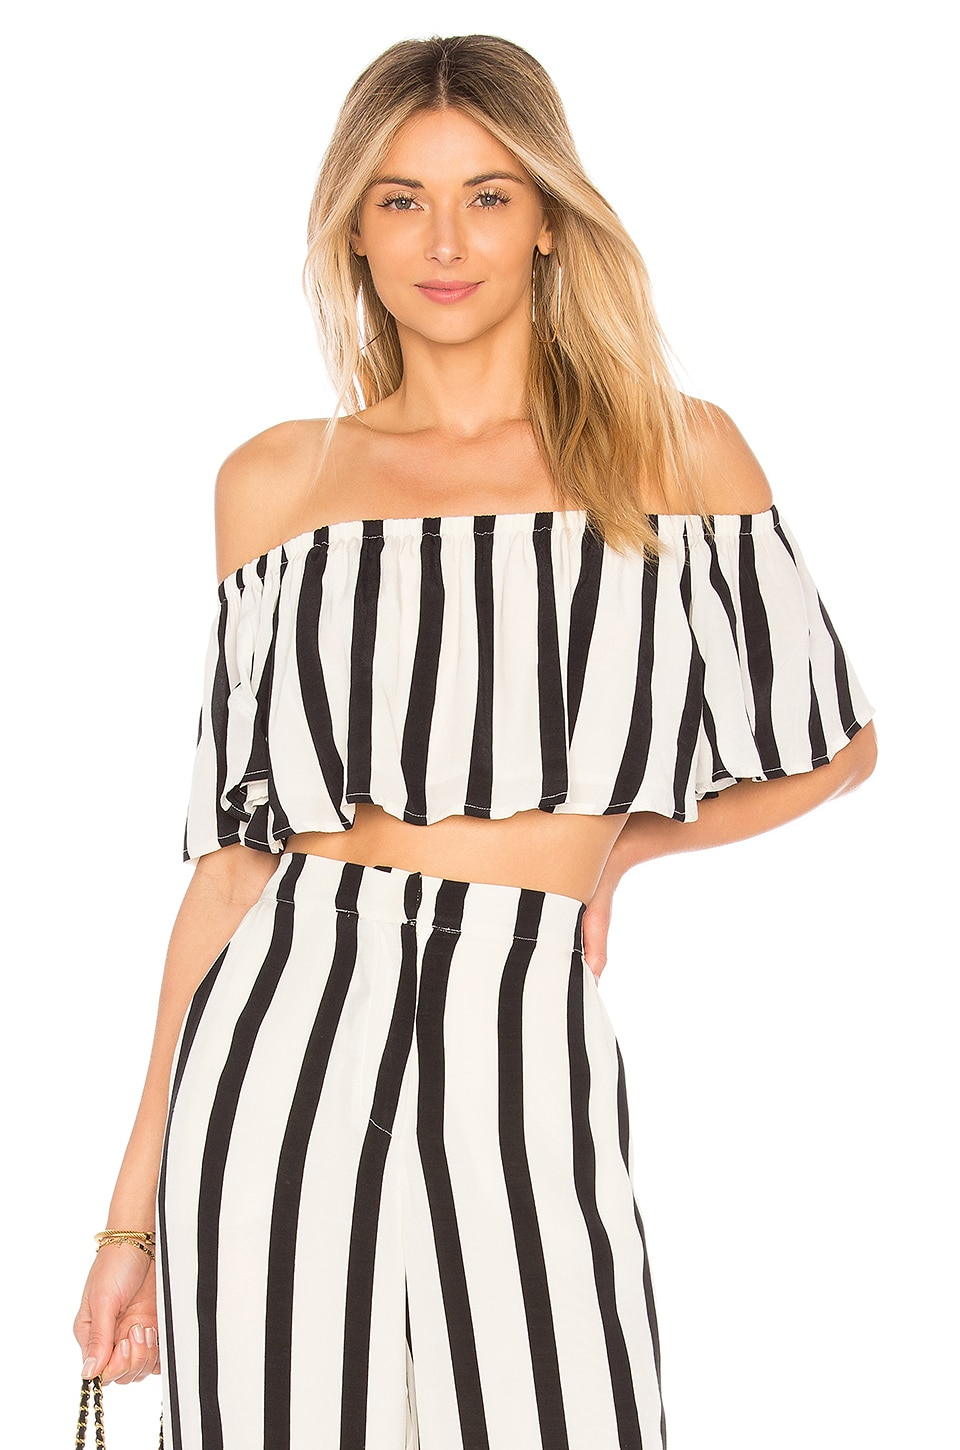 House of Harlow 1960 x REVOLVE Bree Crop Top in Caviar